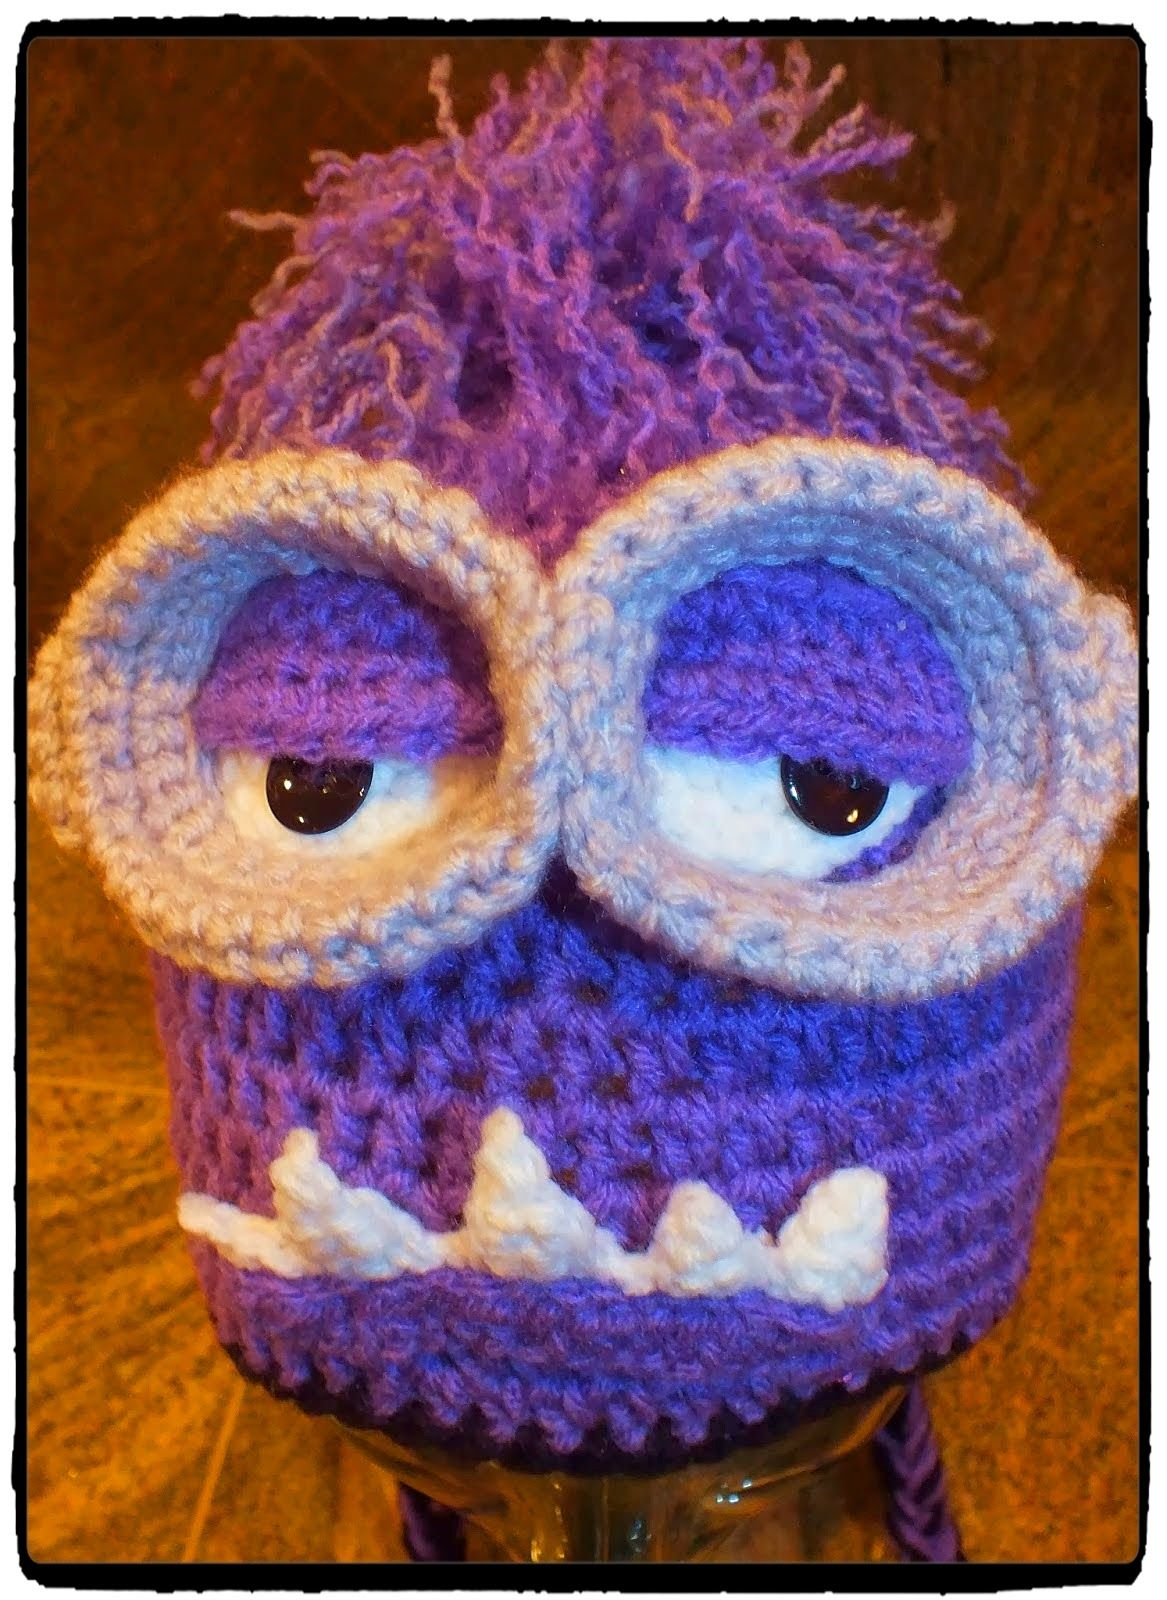 Crochet free patterns crafting free recipes decorating party tips crochet free patterns crafting free recipes decorating party tips cakes cooking poetry poems travel tips crochet crochet purple minion hatminion bankloansurffo Image collections